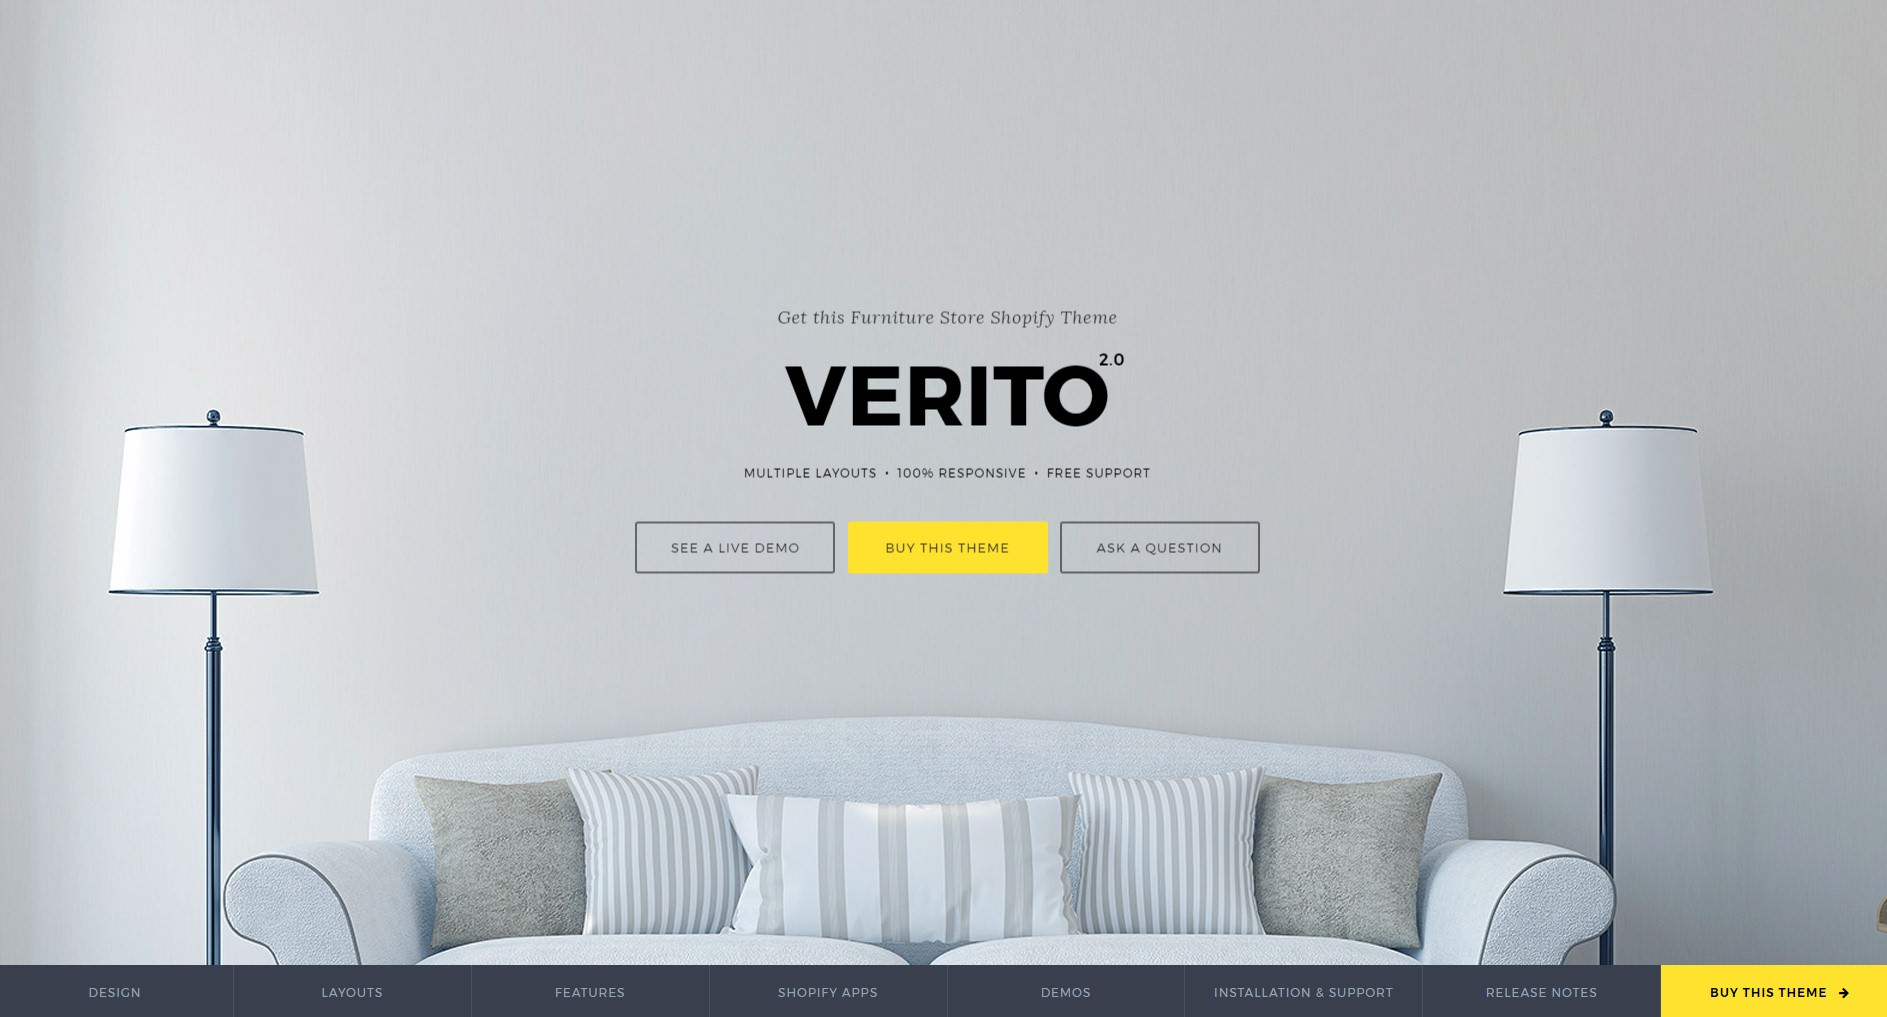 Verito theme